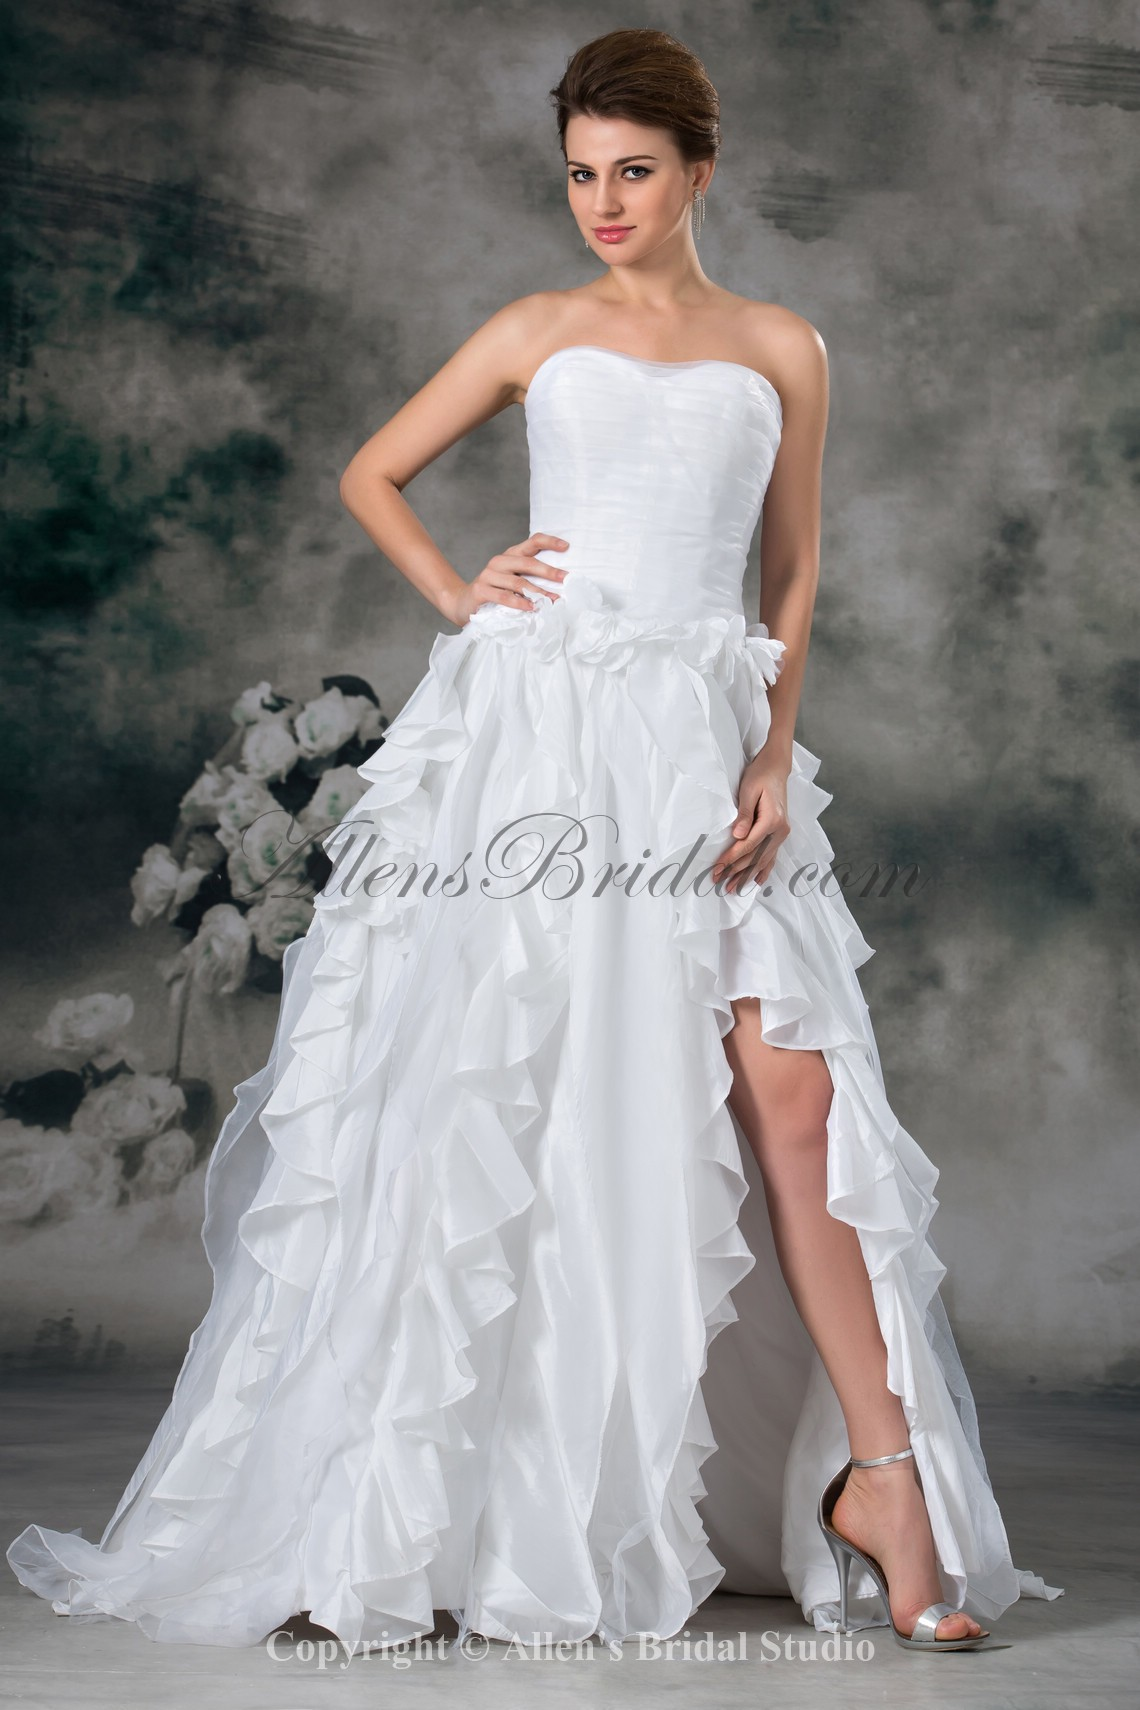 /941-7540/taffeta-sweetheart-neckline-sweep-train-a-line-wedding-dress.jpg